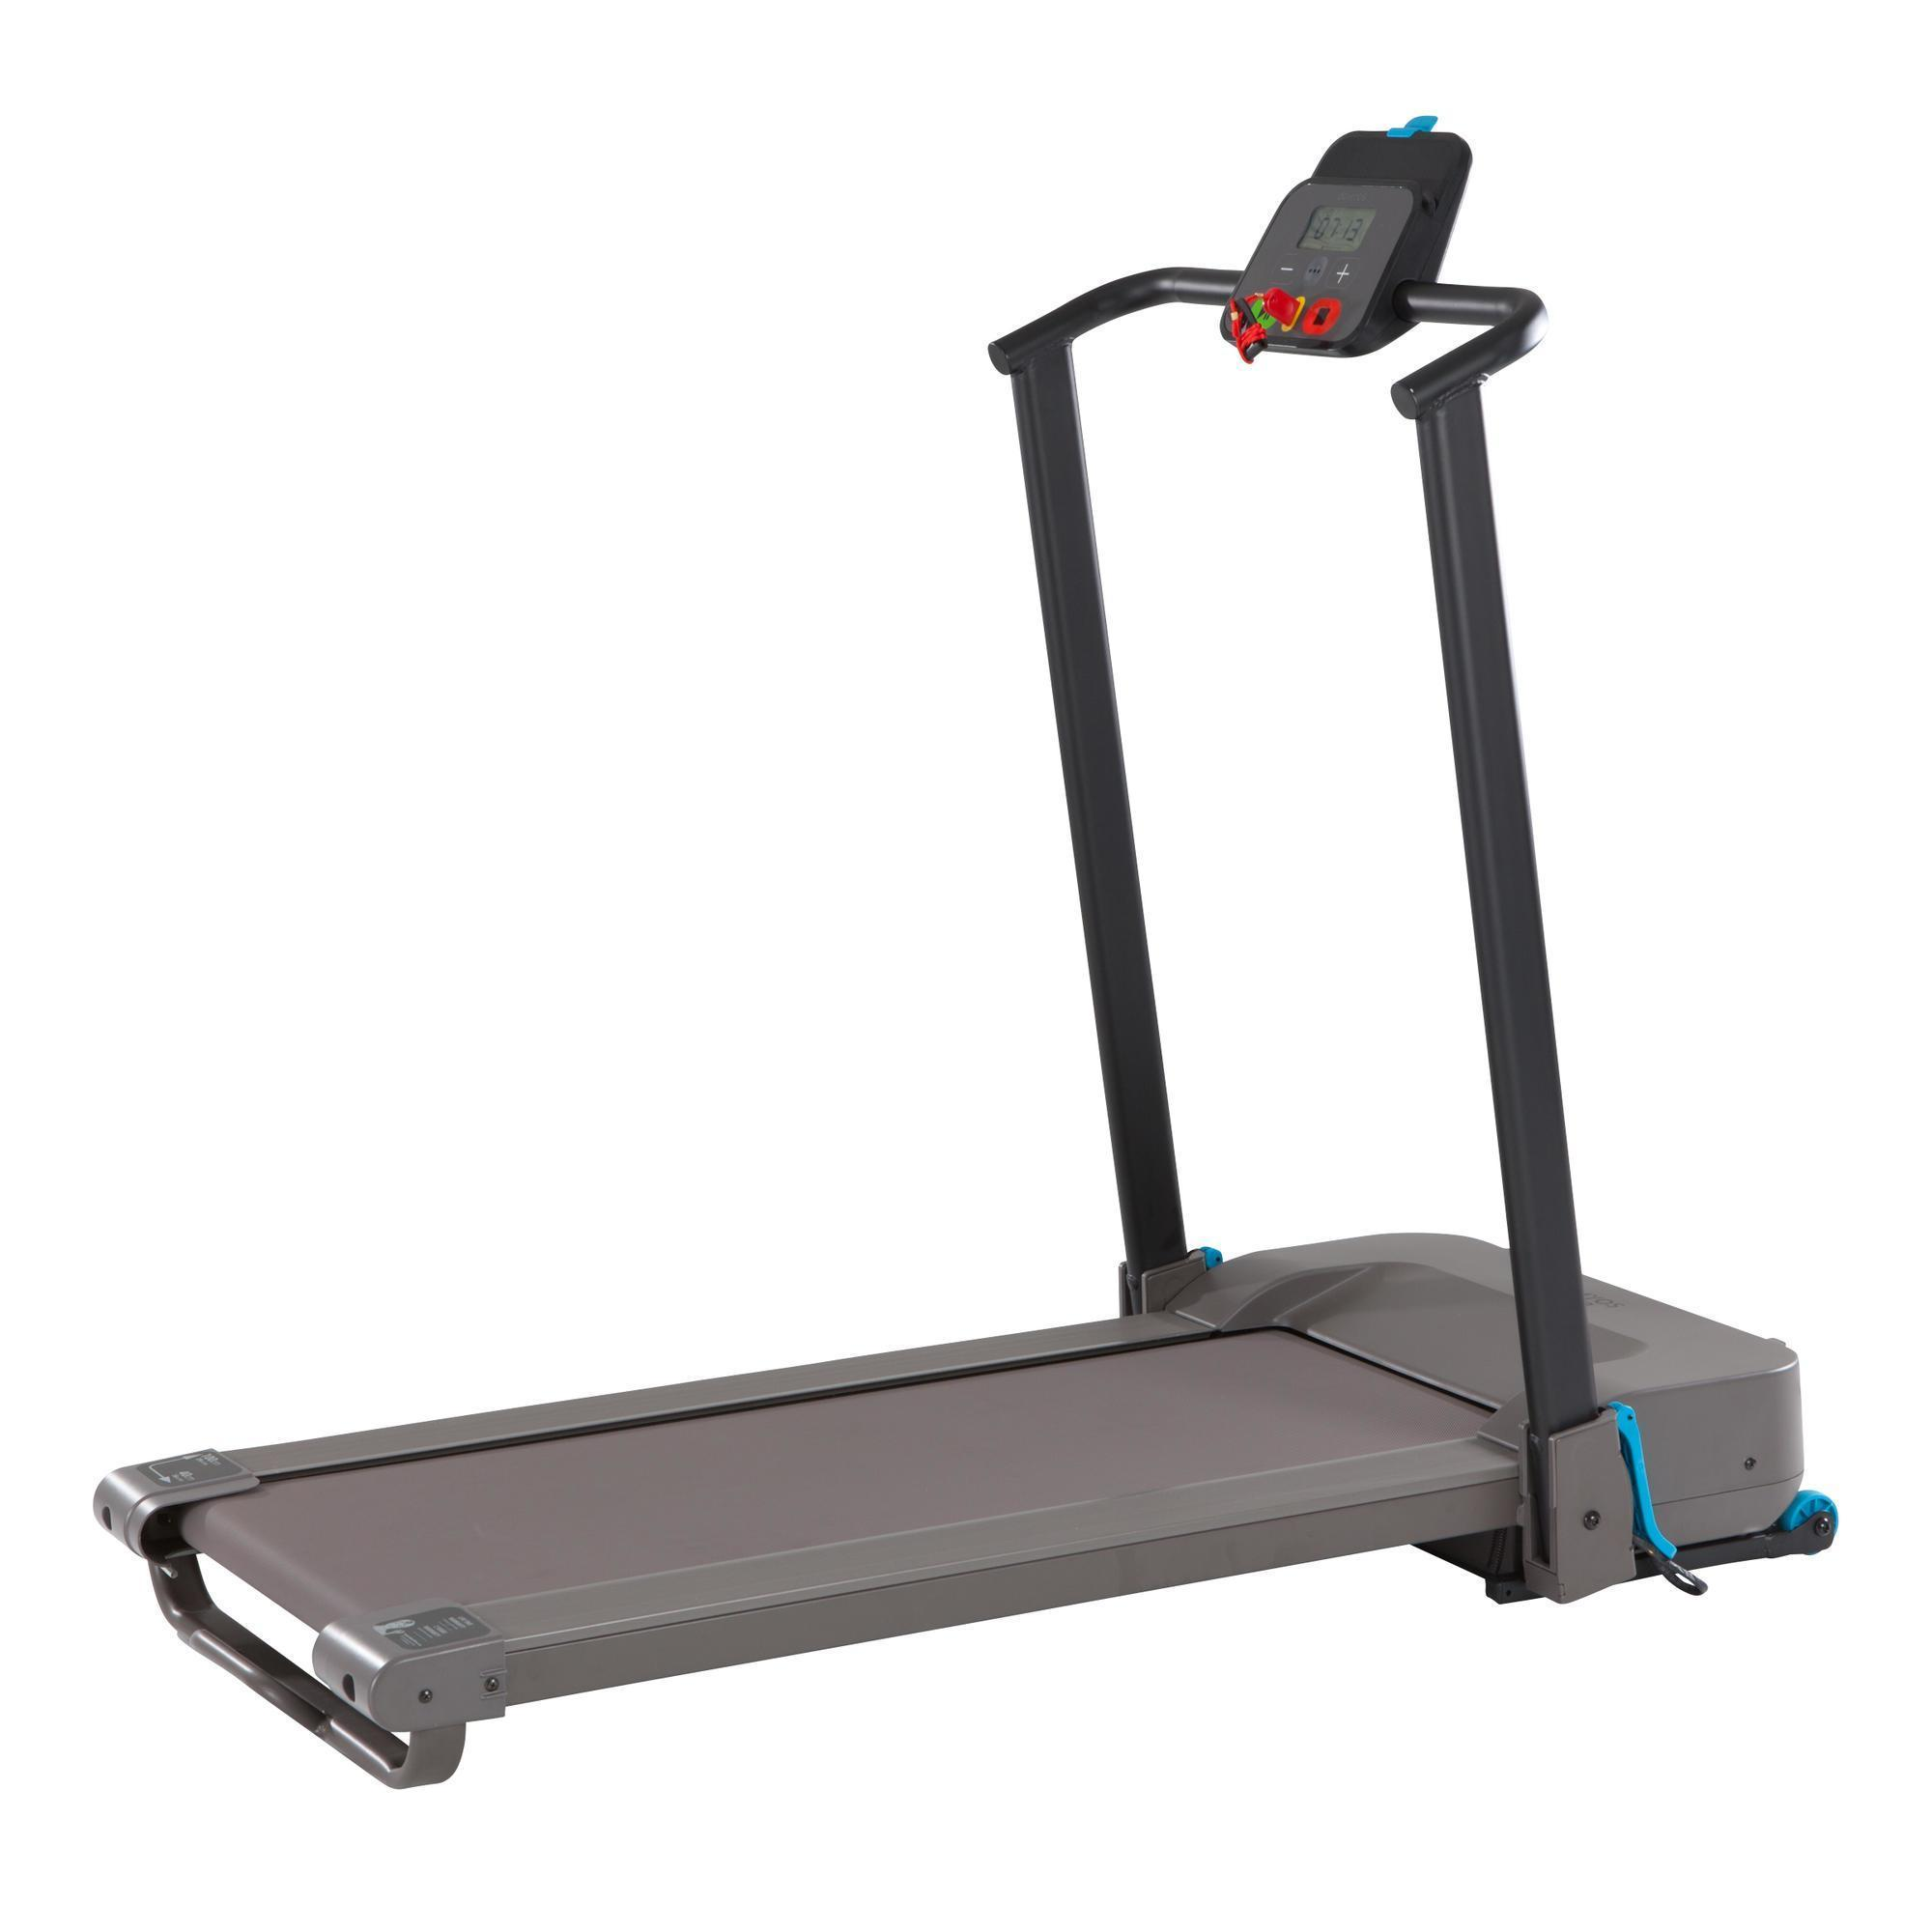 Tapis de marche walk500 domyos by decathlon - Tapis de marche electrique intersport ...